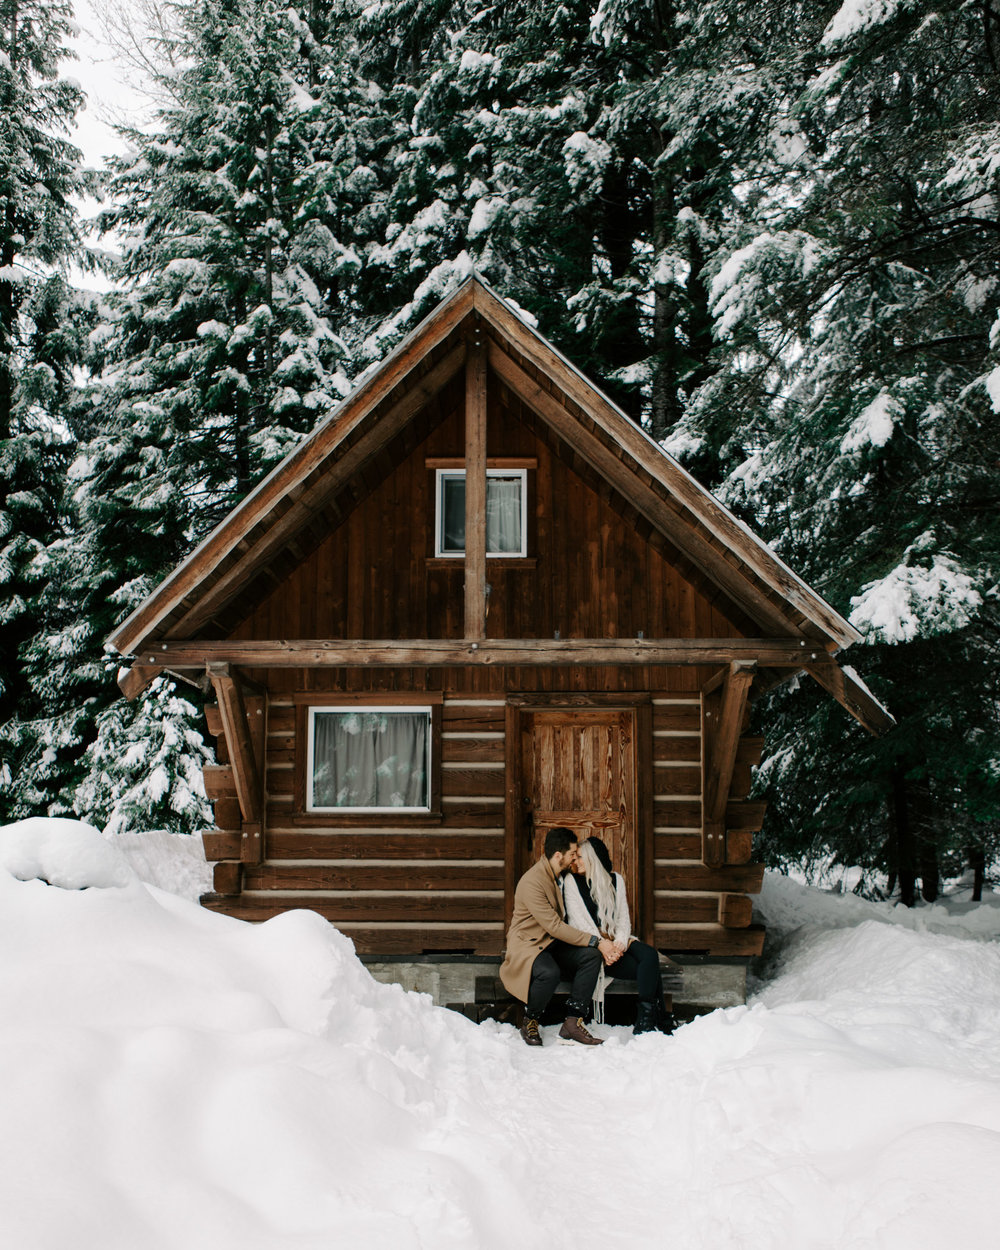 Cute snowy cabin couples photoshoot idea by NYC wedding photographer Desiree Leilani